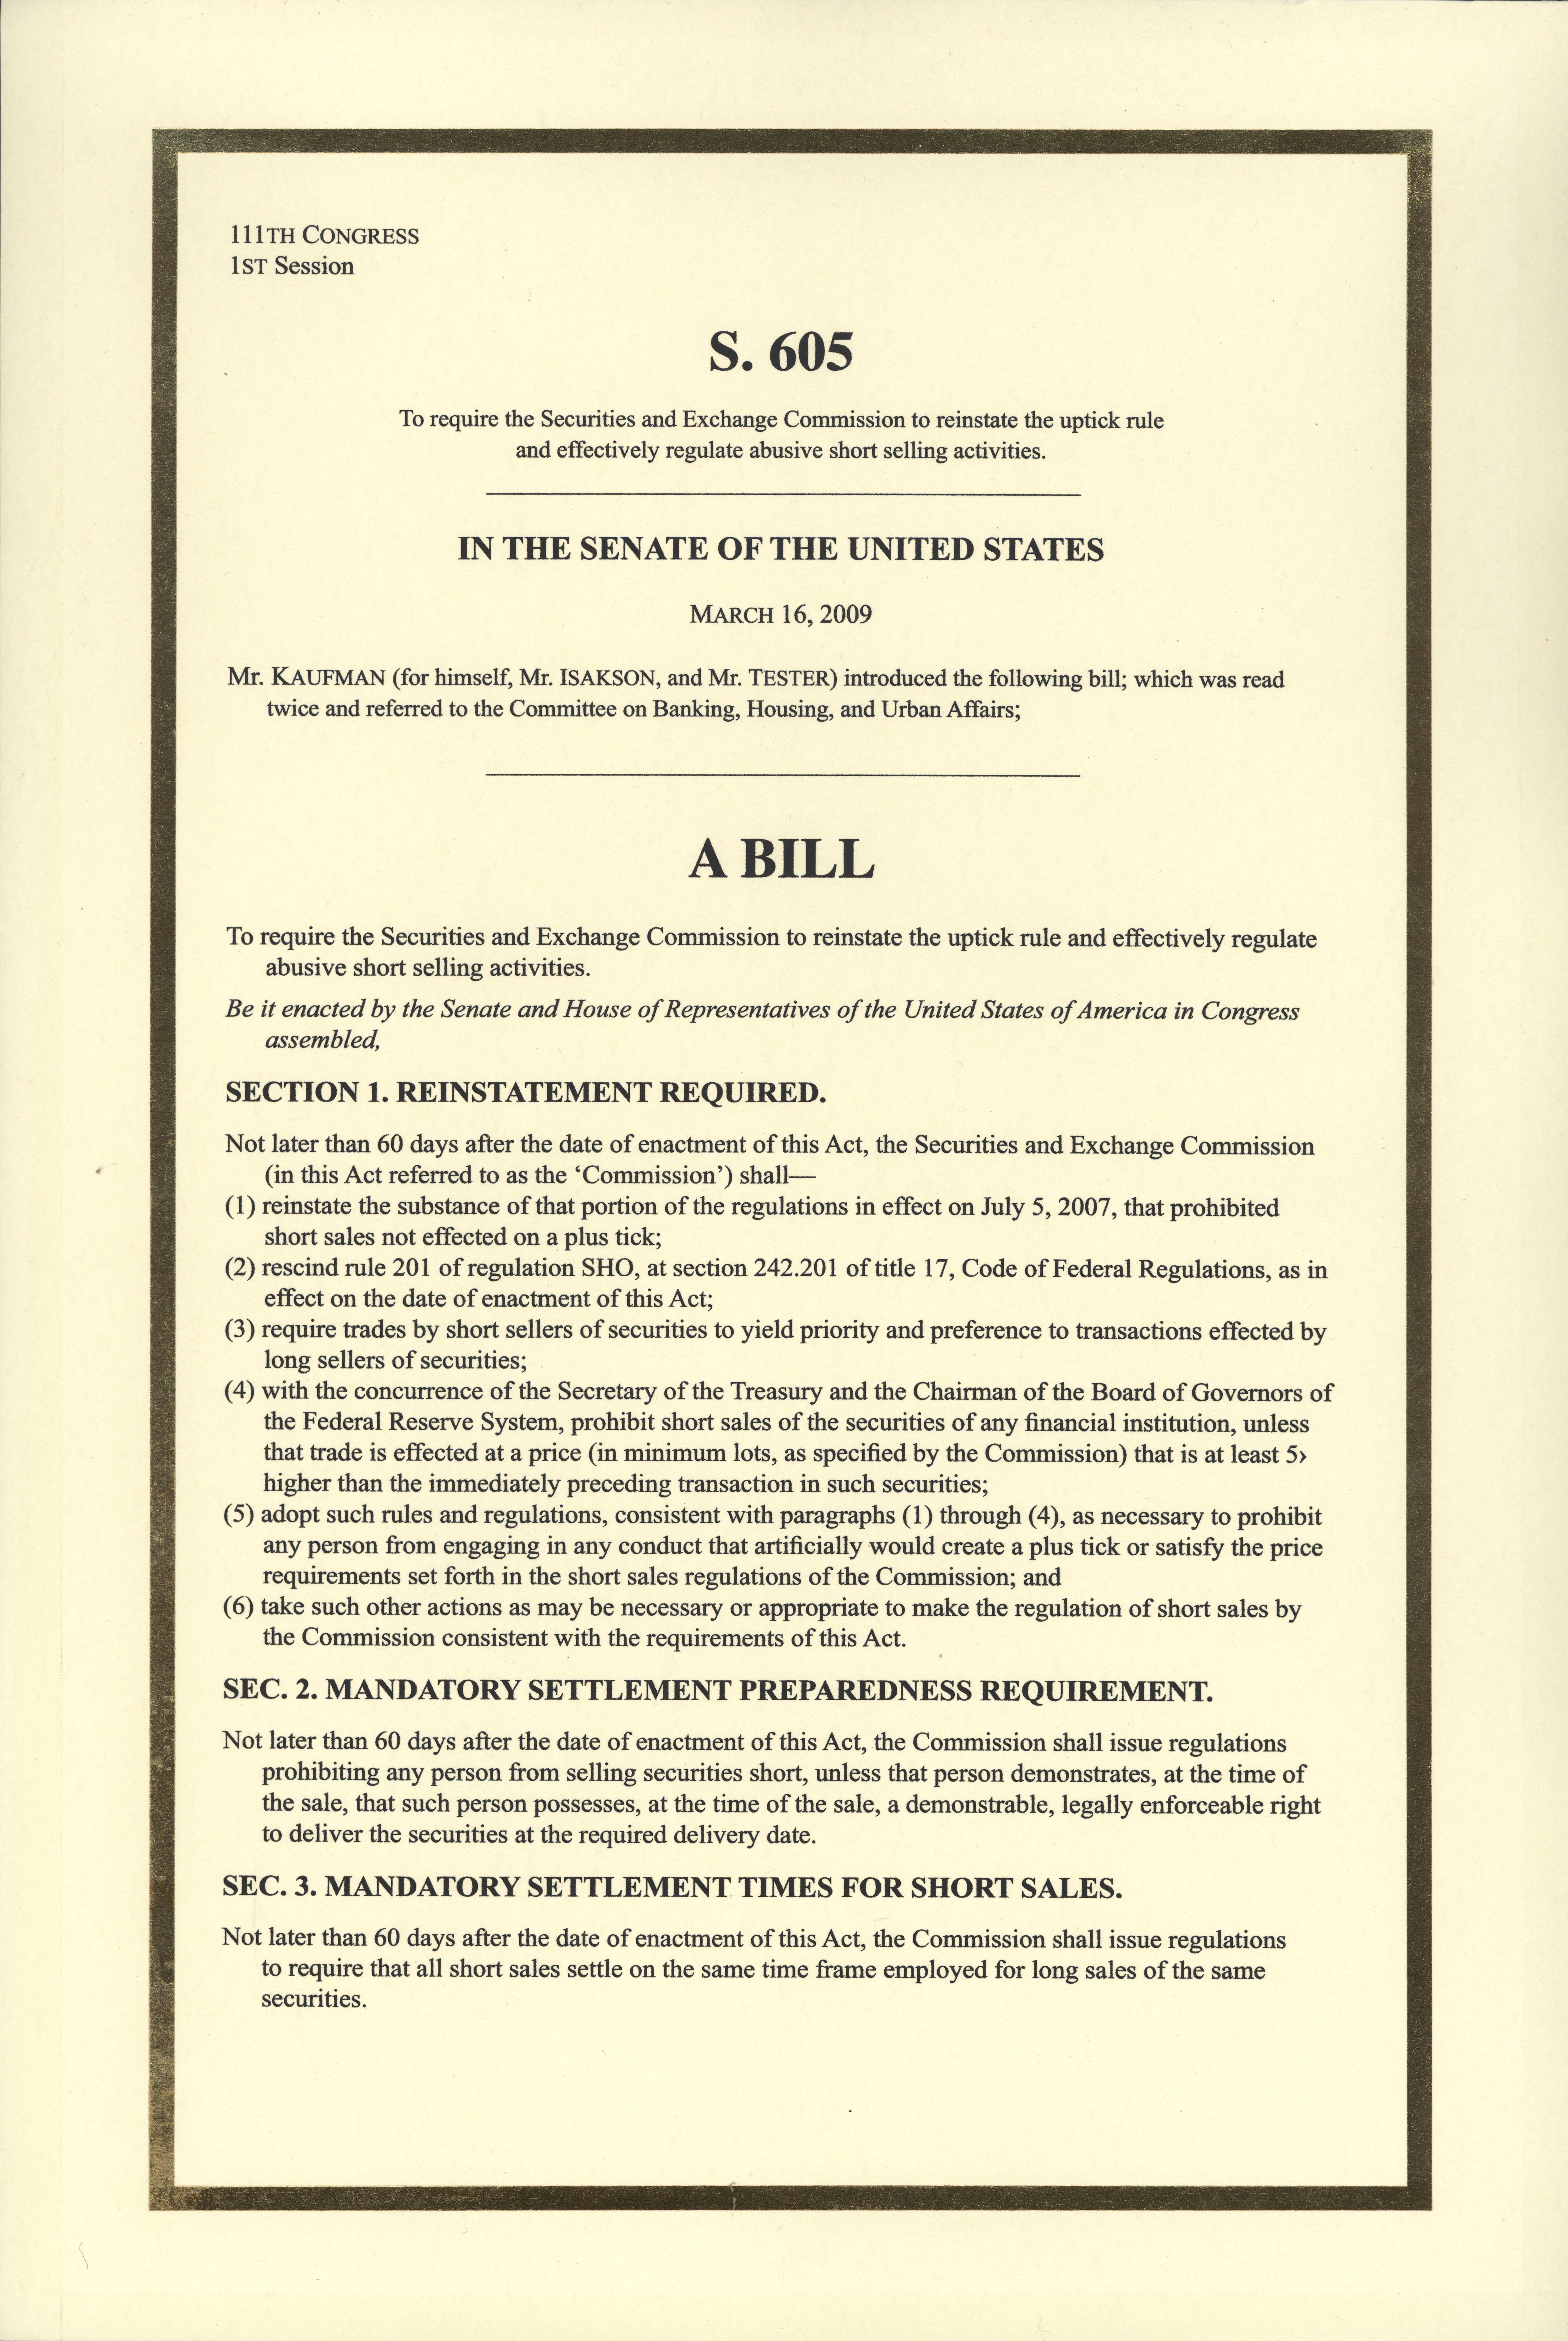 To require the Securities and Exchange Commission to reinstate the uptick rule and effectively regulate abusive short selling activities, S. 605, 111th Congress, 2009 March 16